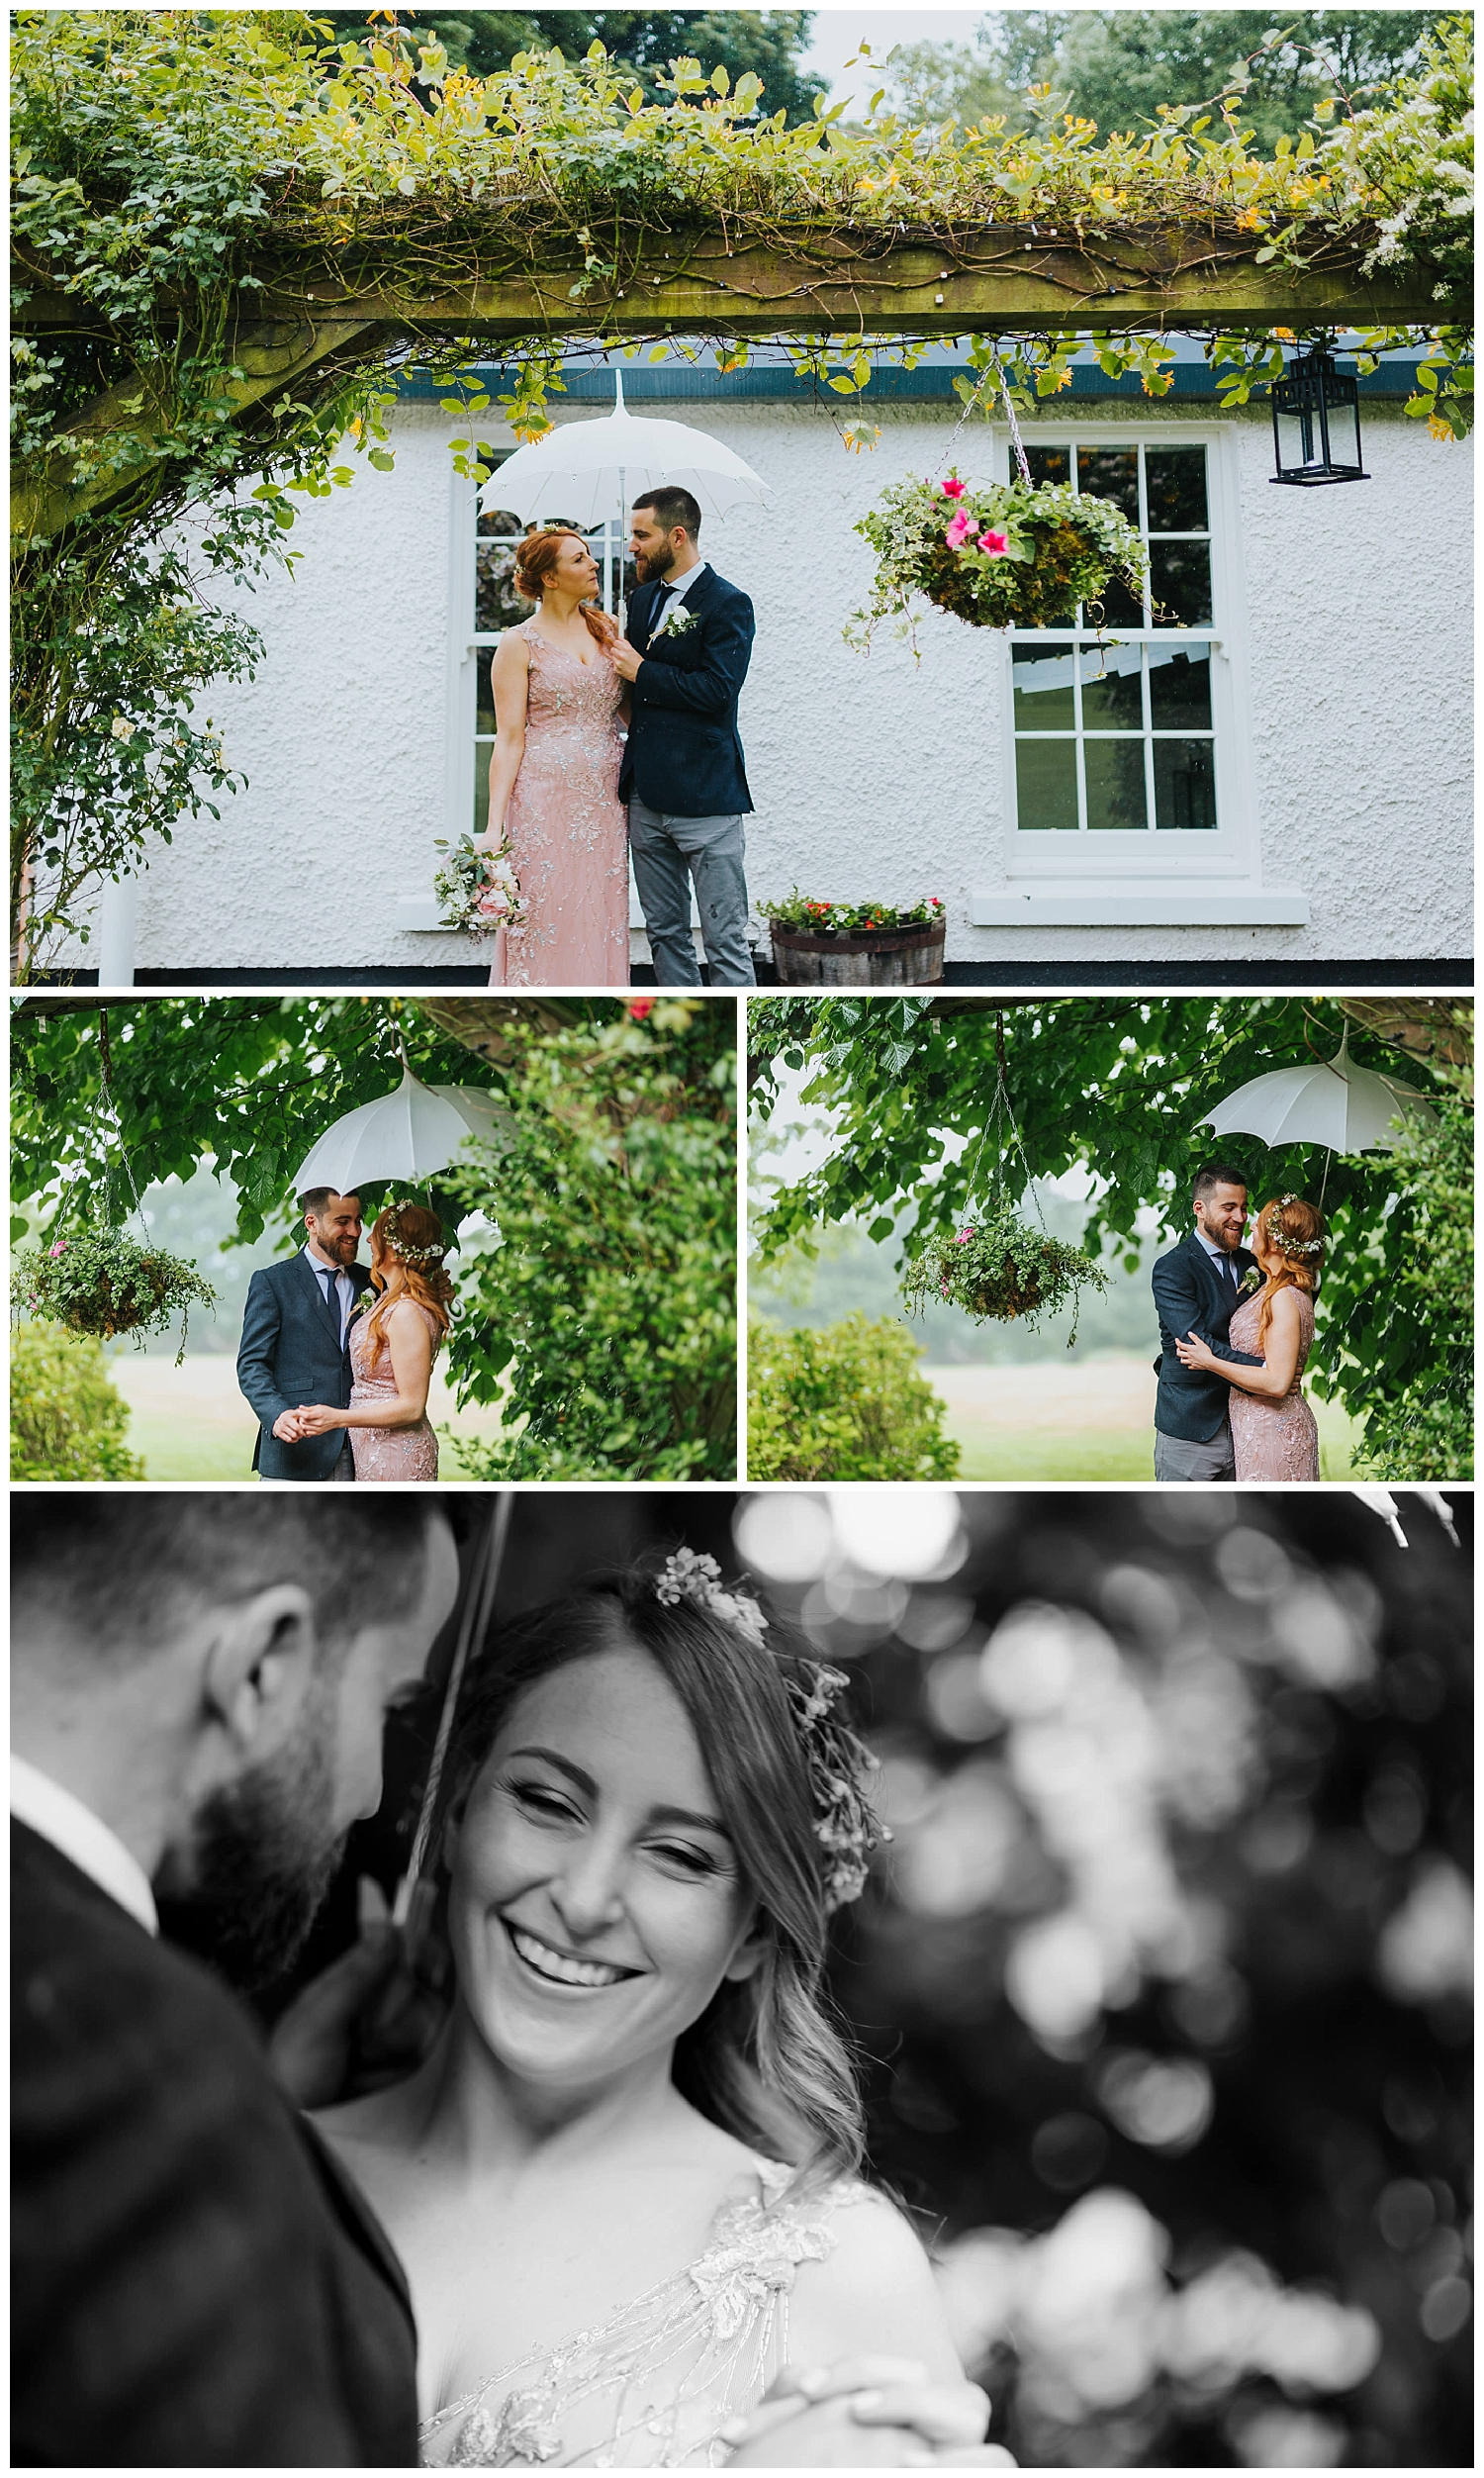 p+g_rathsallagh_house_wedding_livia_figueiredo_369.jpg